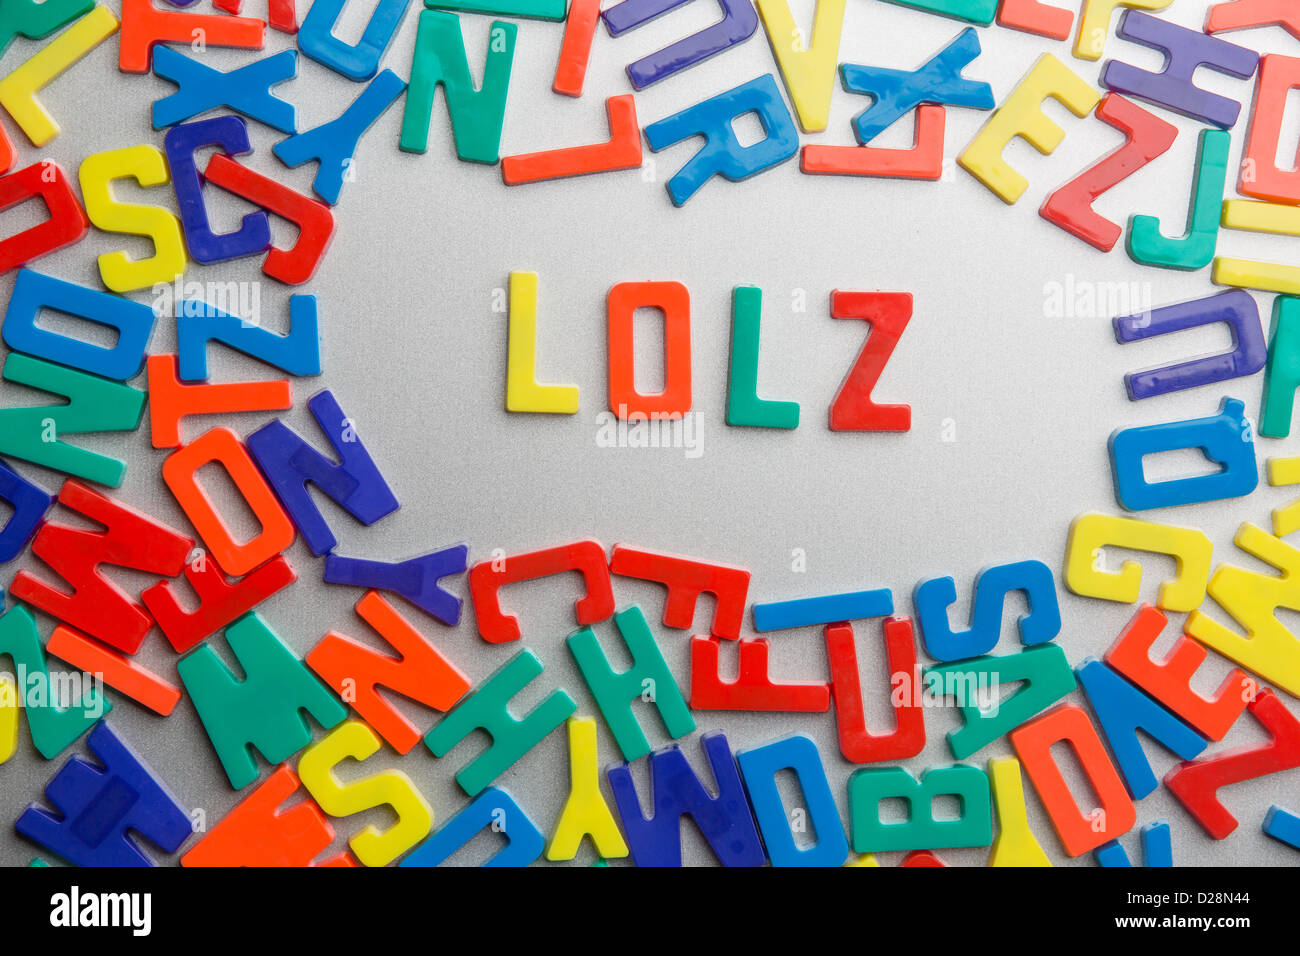 'LOLZ' - Refrigerator magnets spell messages out of a jumble of letters - Stock Image